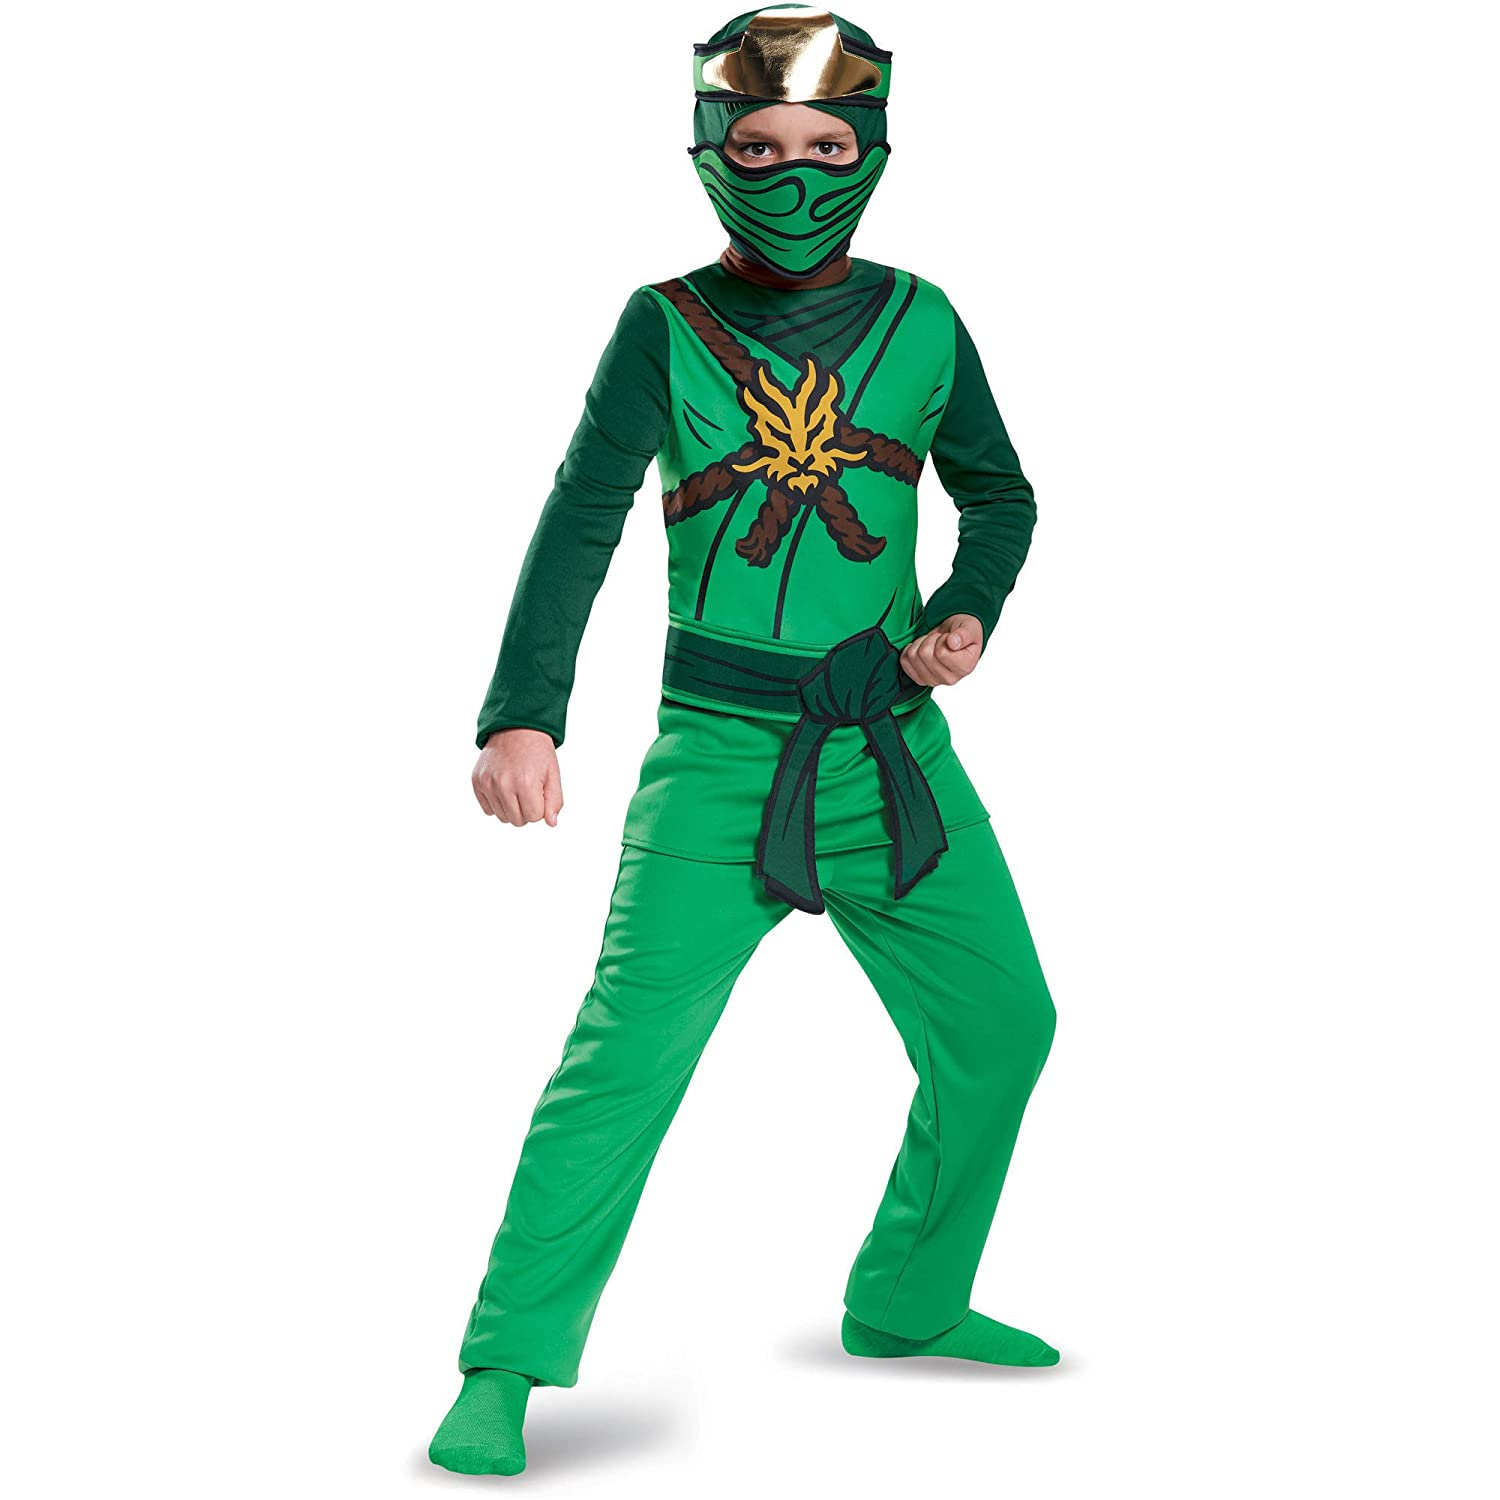 Lego Ninjago Lloyd Costume, Boys size Small, 4-6